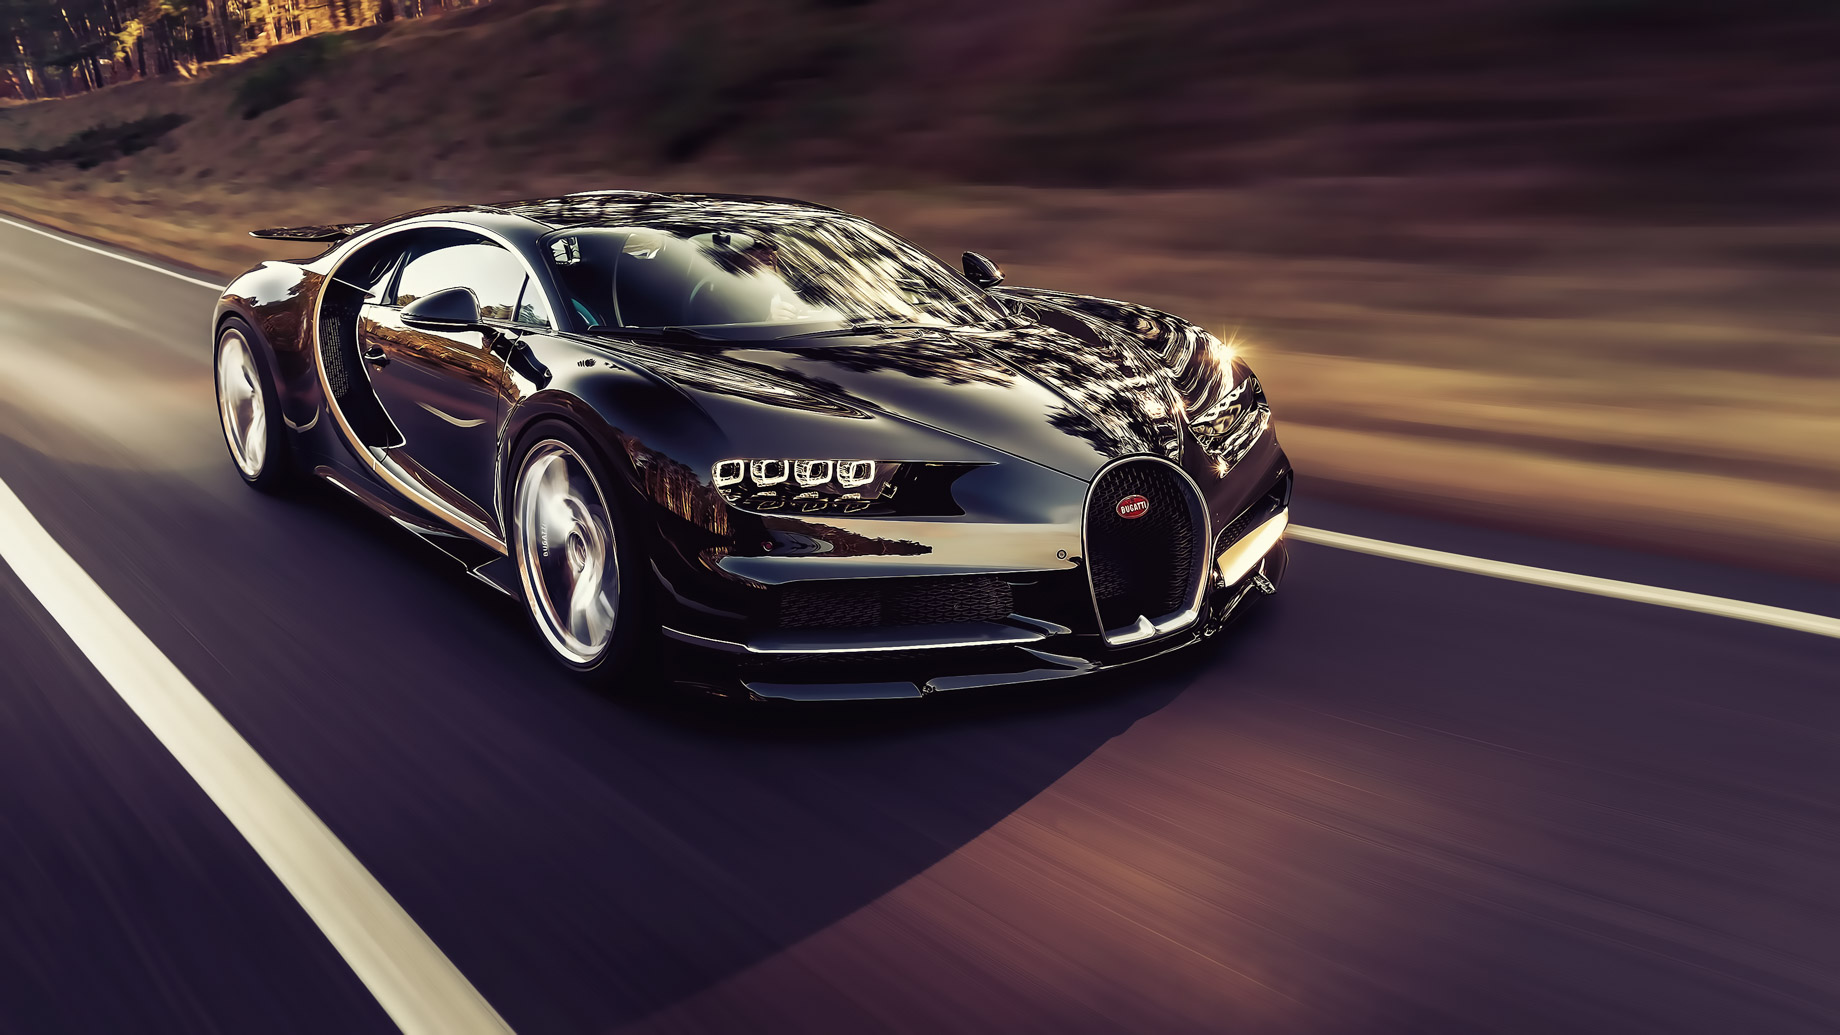 Bugatti Chiron – Dreaming Big – 6 Luxury Items You Could Purchase if Money Was No Object